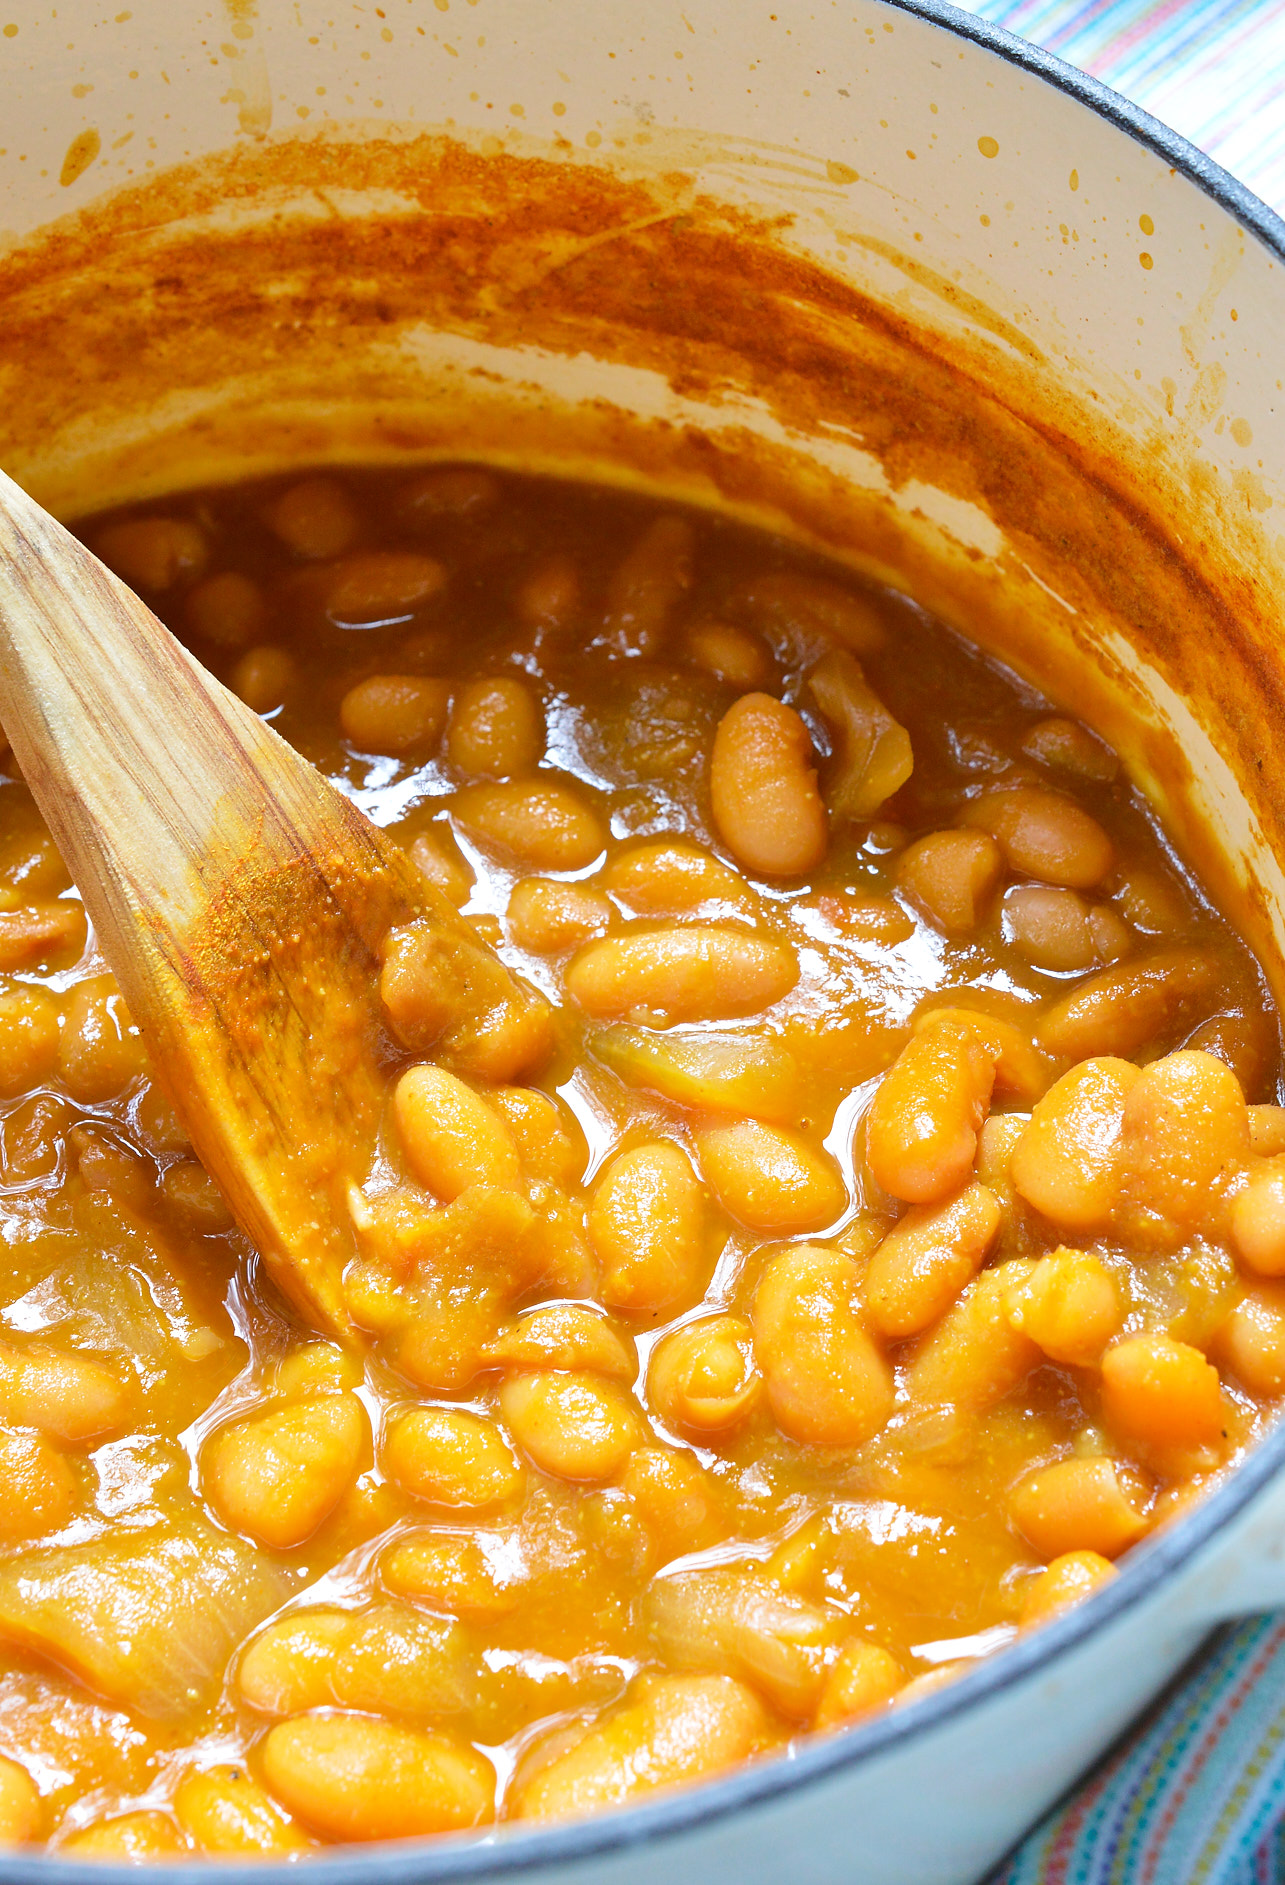 If you make this Refried Beans Recipe with Canary Beans you may never go back to the canned variety! This refried beans recipe is simple and produces the creamiest consistency thanks to the Canary Beans, also known as Mayocoba beans. These Peruvian beans are similar to pinto beans and taste great with any of your favorite Mexican dishes! vegetarian and vegan options included